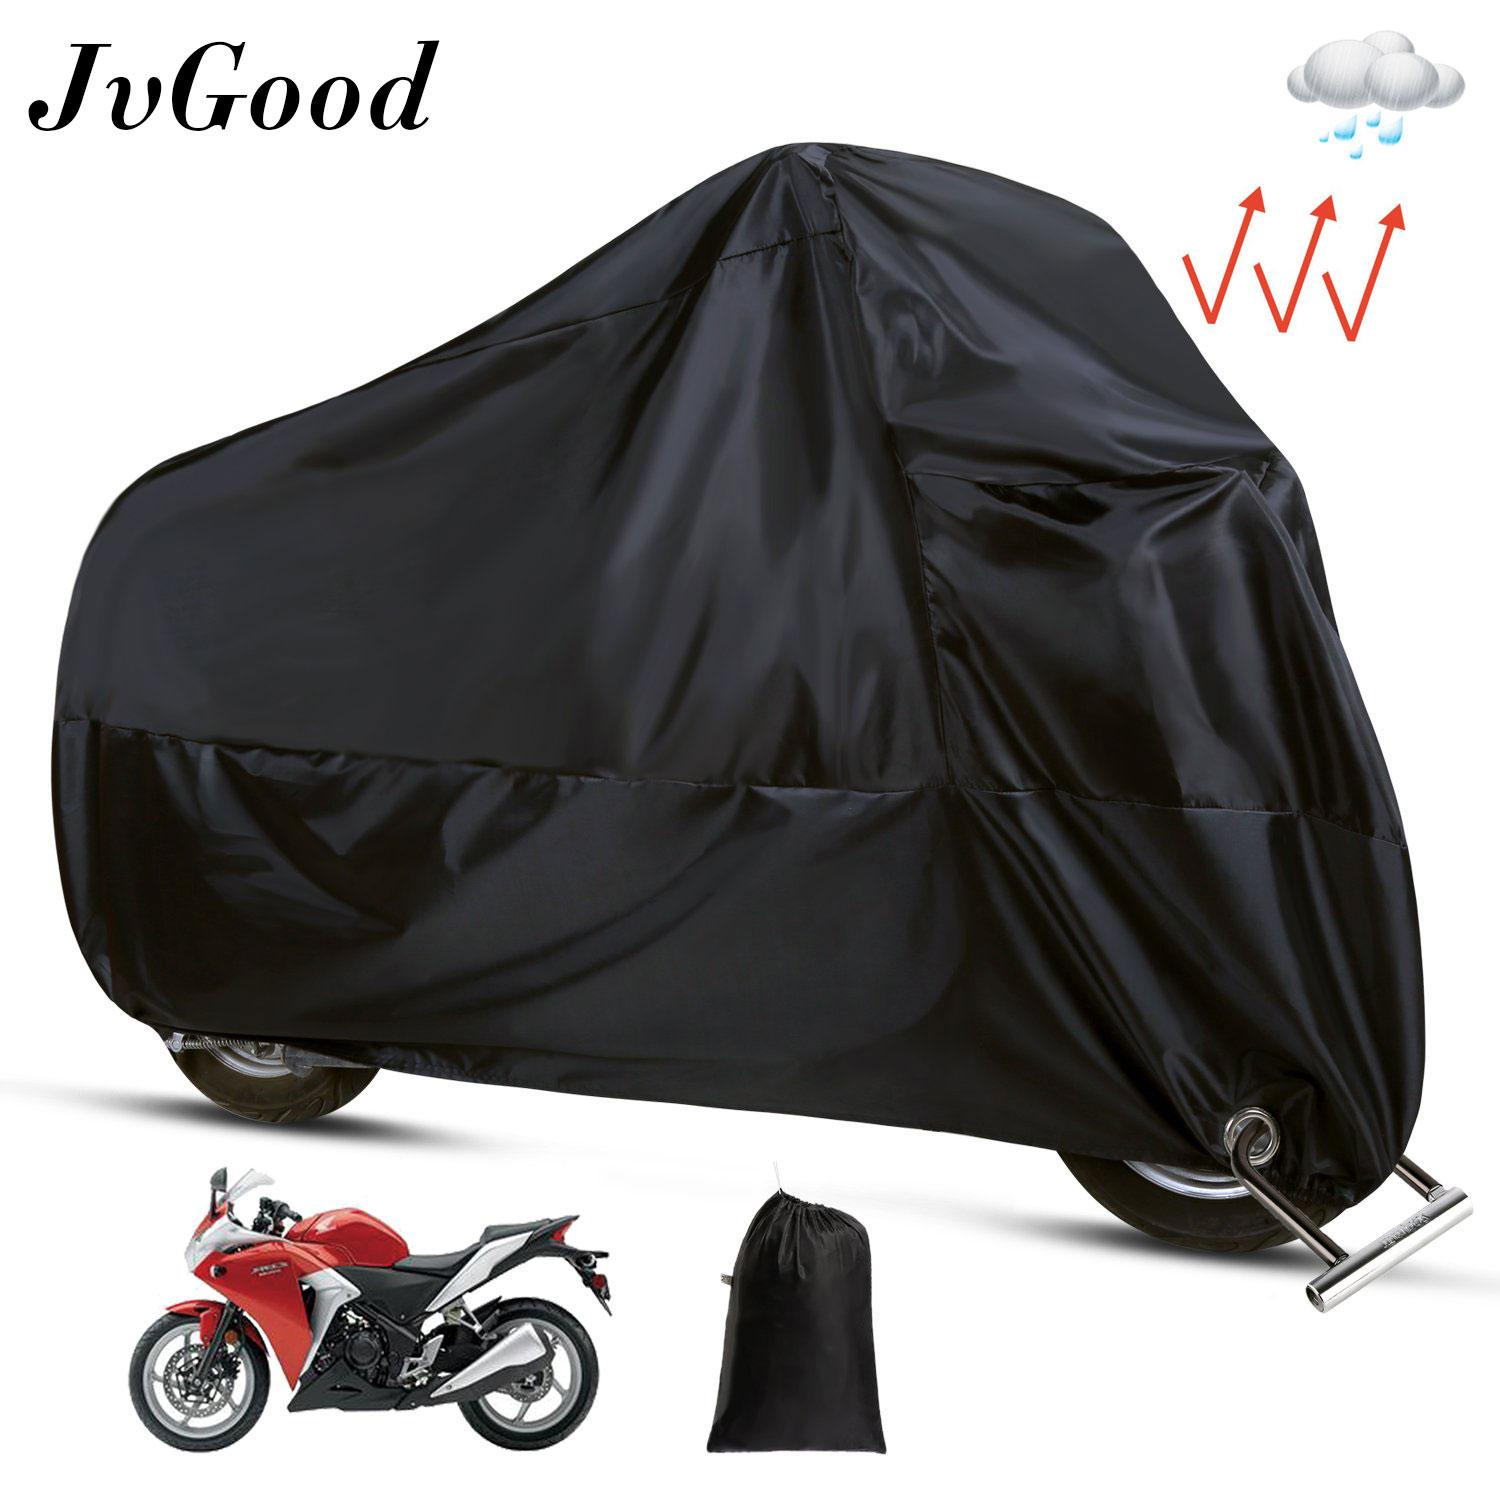 Jvgood Motorcycle Cover, Motorbike Waterproof Cover Protector Case Cover Rain Protection Breathable Uv Sun Shade Protective Case Dustproof Uv Prevention Casing For Bicycle Scooter 190t By Jvgood.